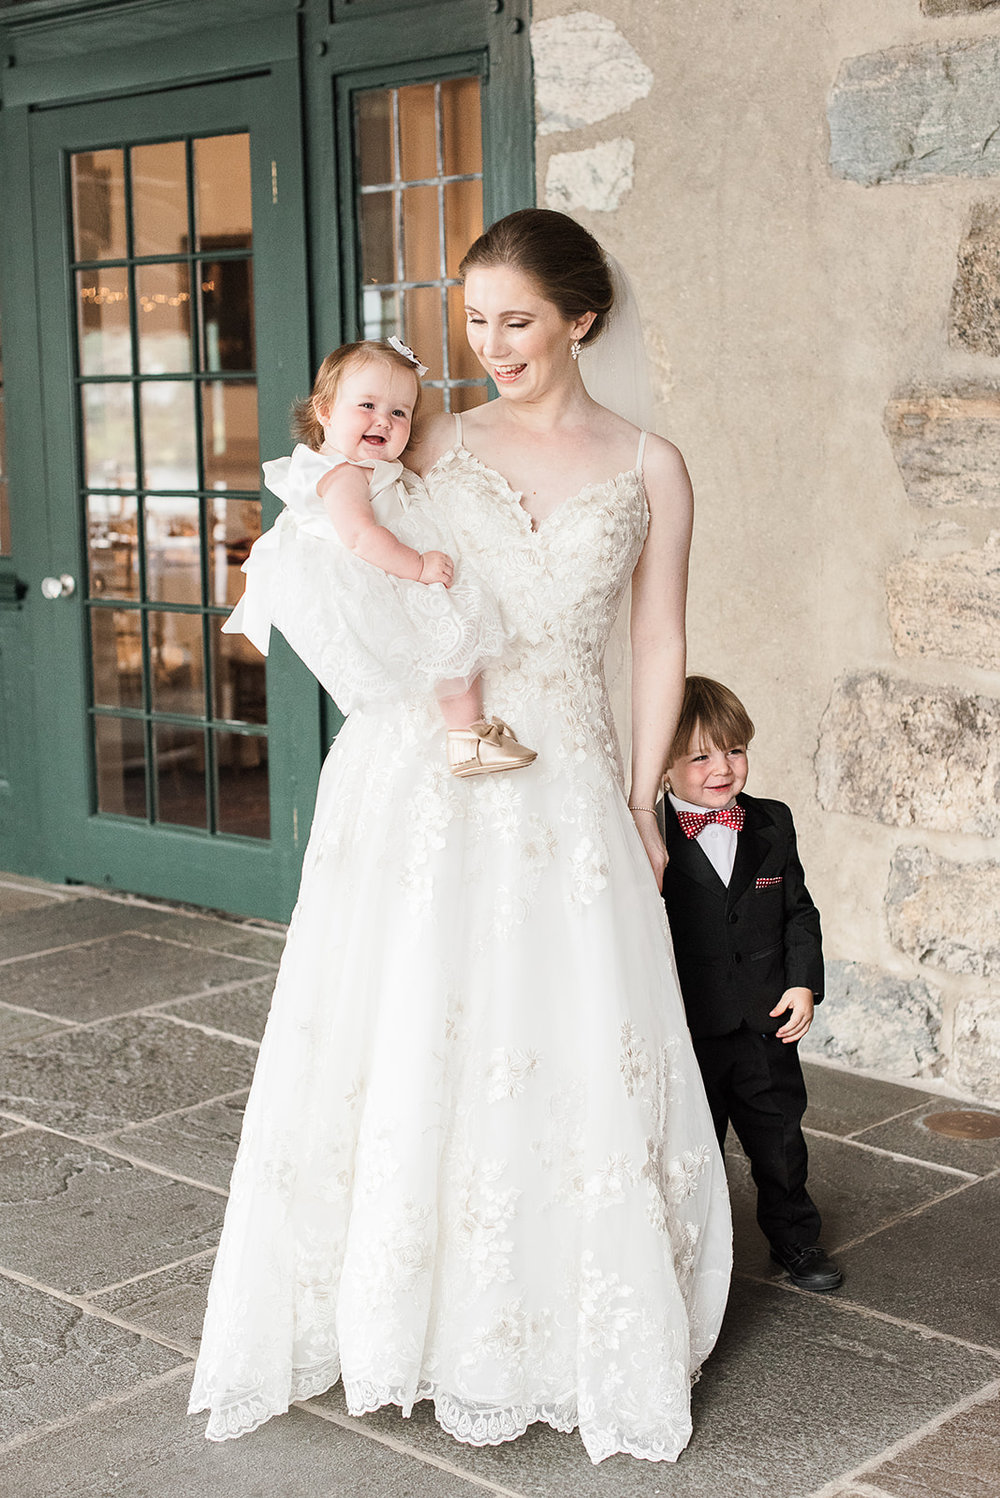 Flower girl and ring bearer photo with the bride